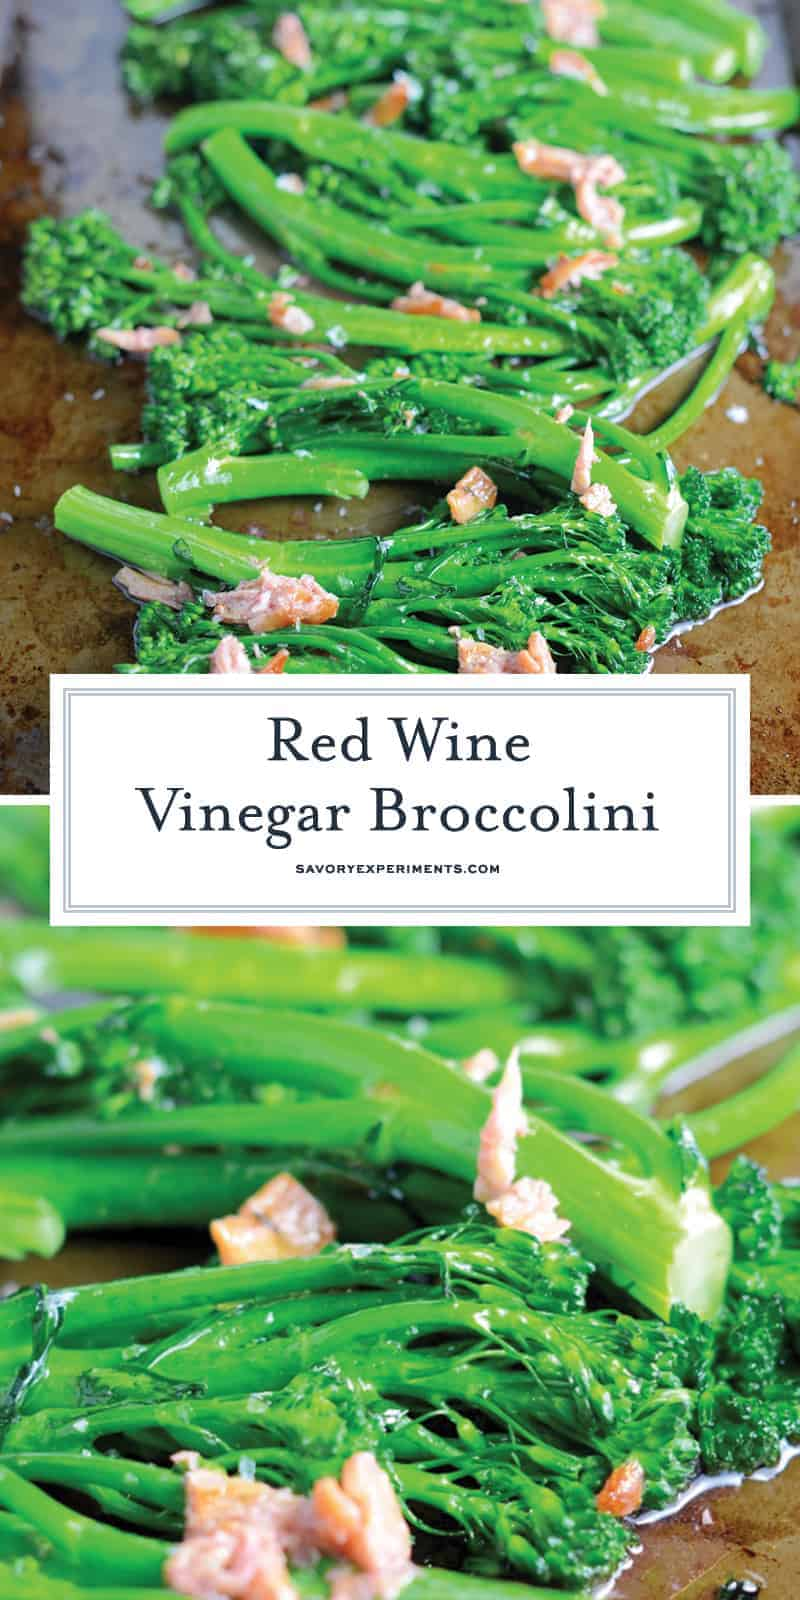 Red Wine Vinegar Broccolini combines fresh flavors of tender broccolini with garlic and snappy red wine vinegar for a simple, healthy and tasty side dish recipe. #broccolini #sidedisherecipes www.savoryexperiments.com